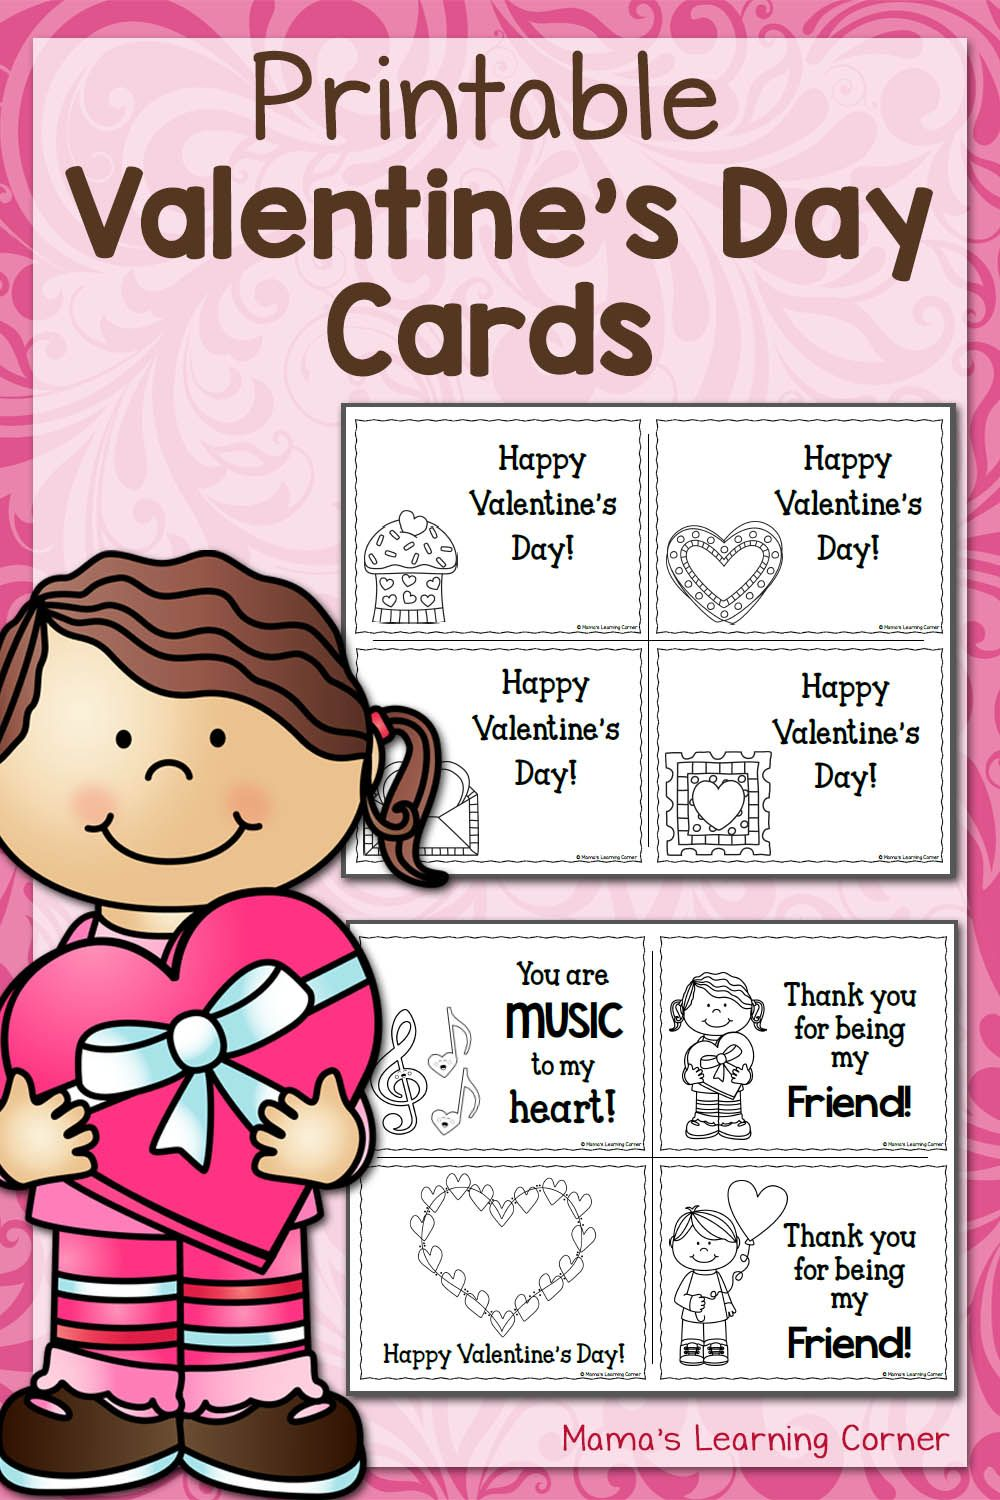 Printable Valentine's Day Cards | Best of Mama's Learning Corner ...